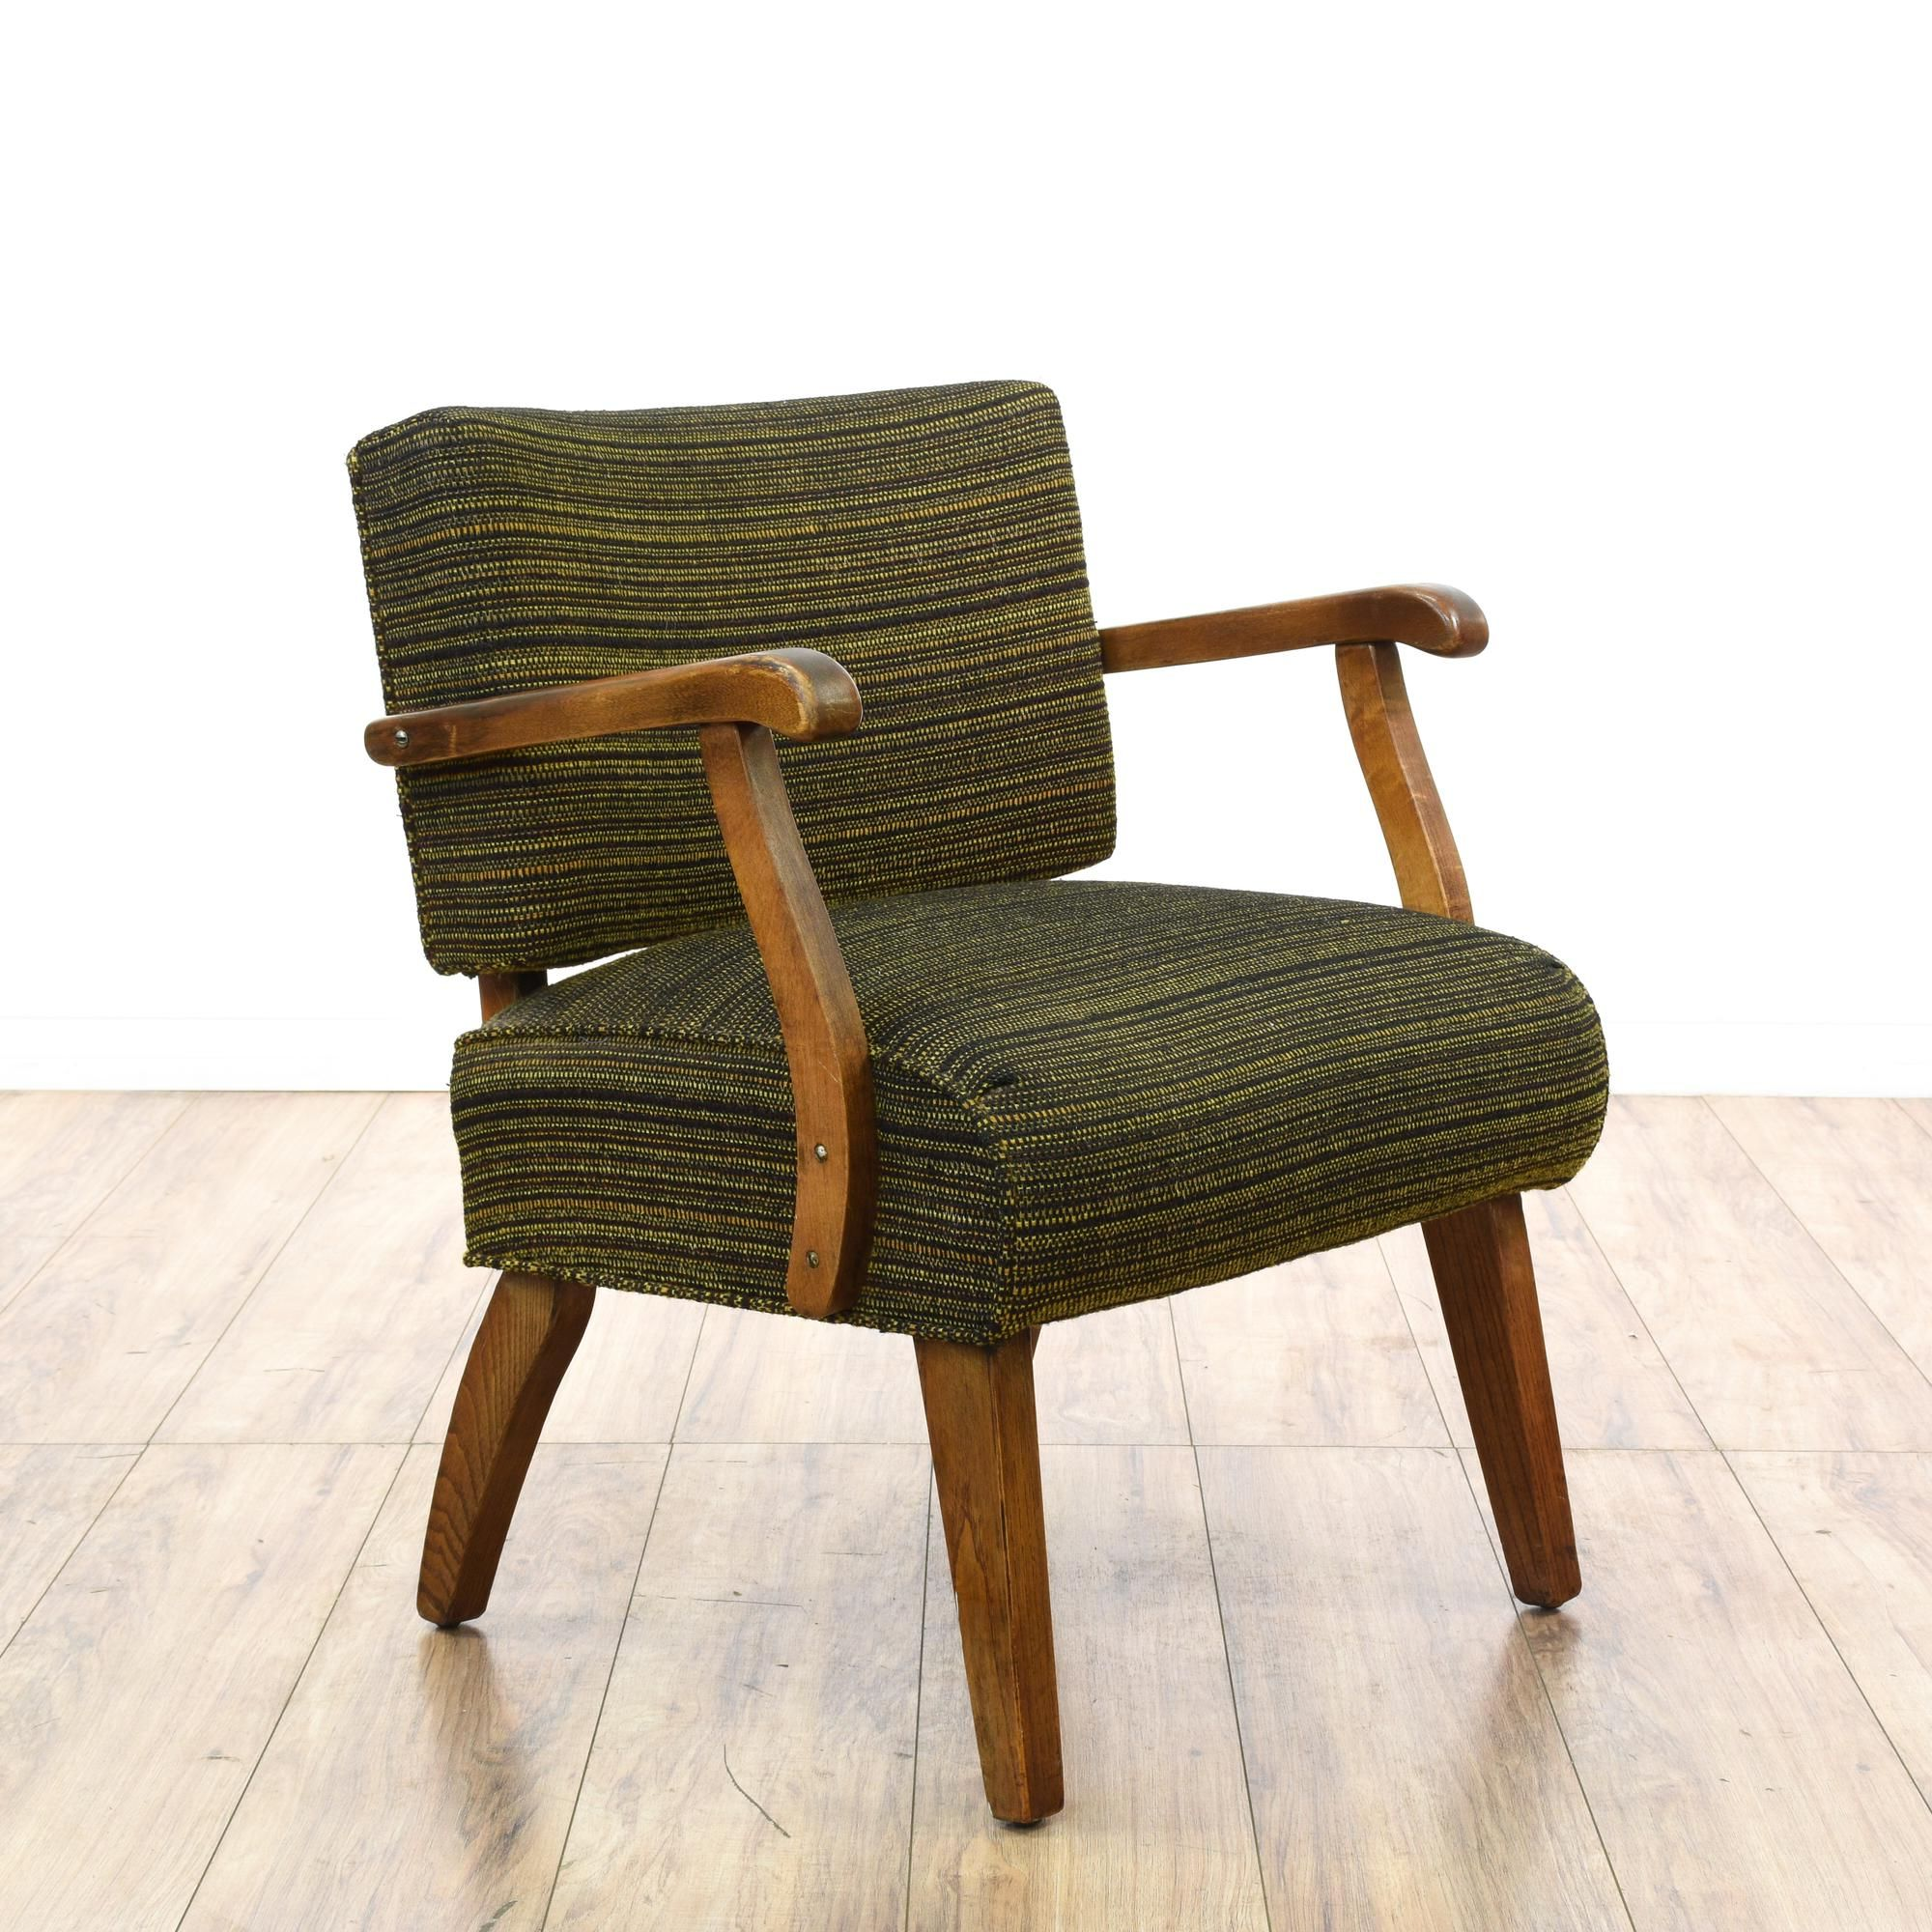 This mid century modern slipper chair is featured in a solid wood